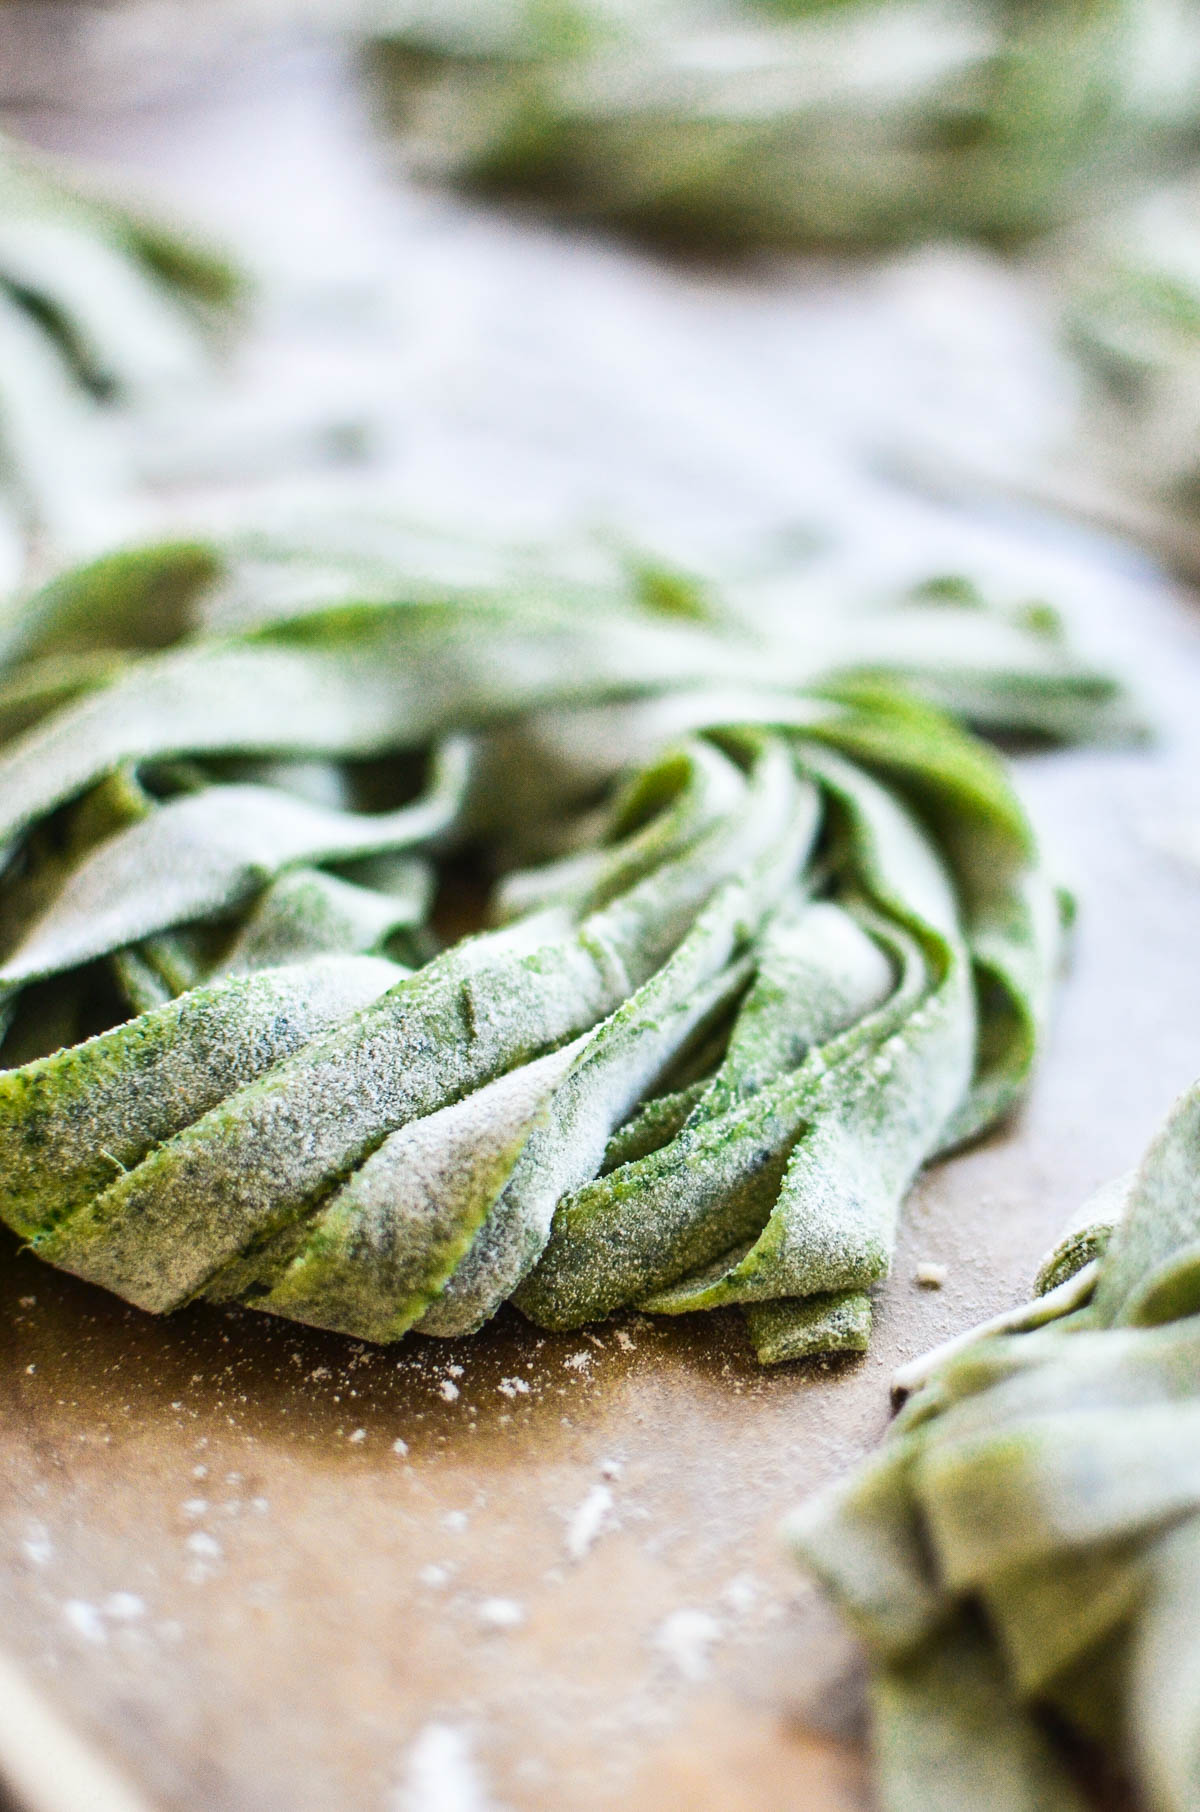 Homemade Pasta with Fresh Greens on a baking sheet.